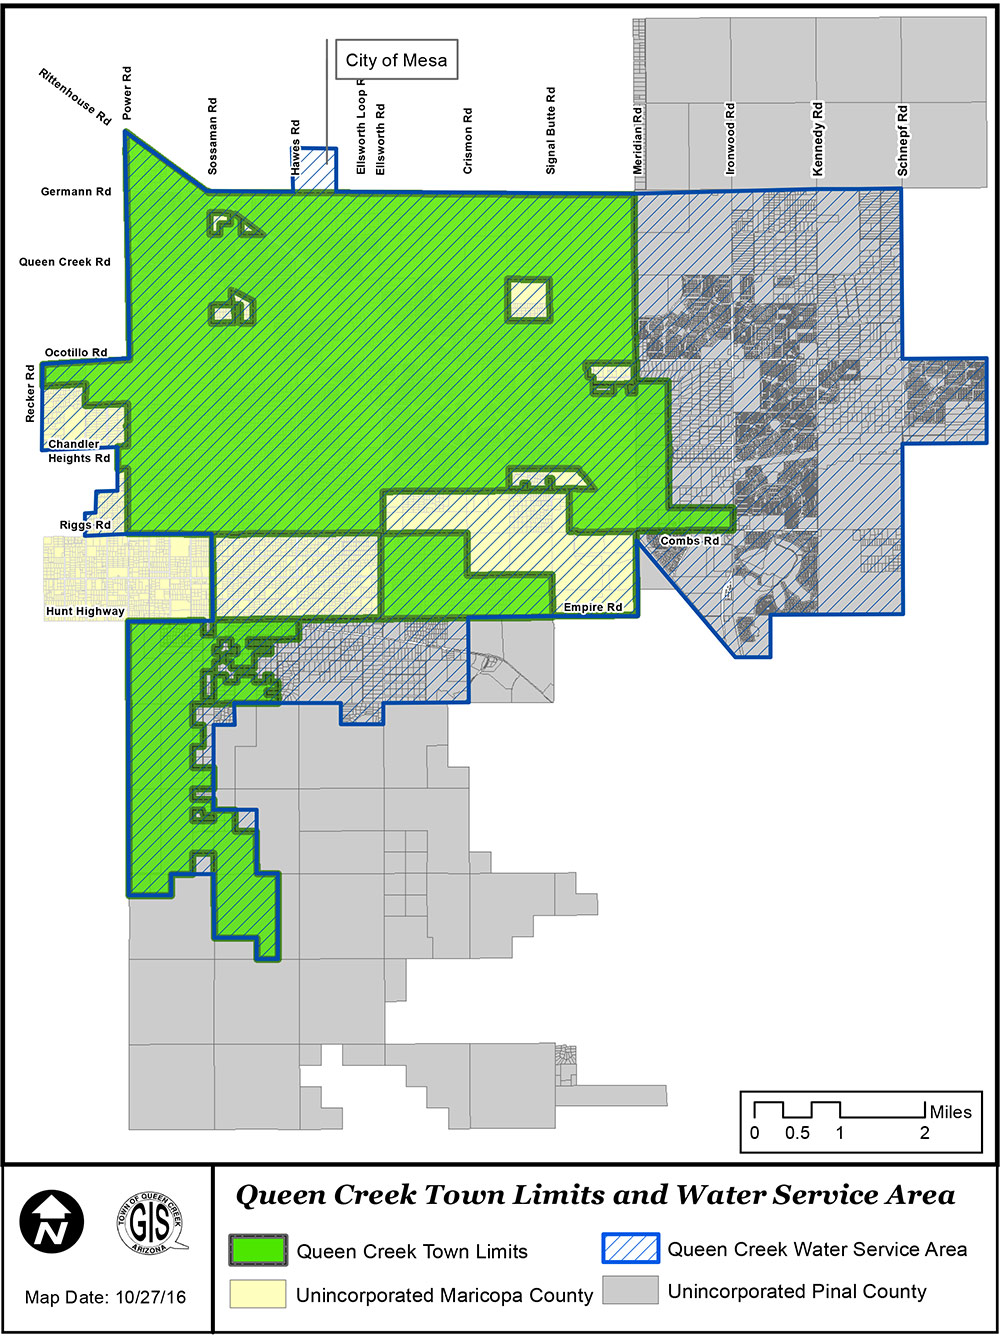 Map showing Water Service areas in Queen Creek